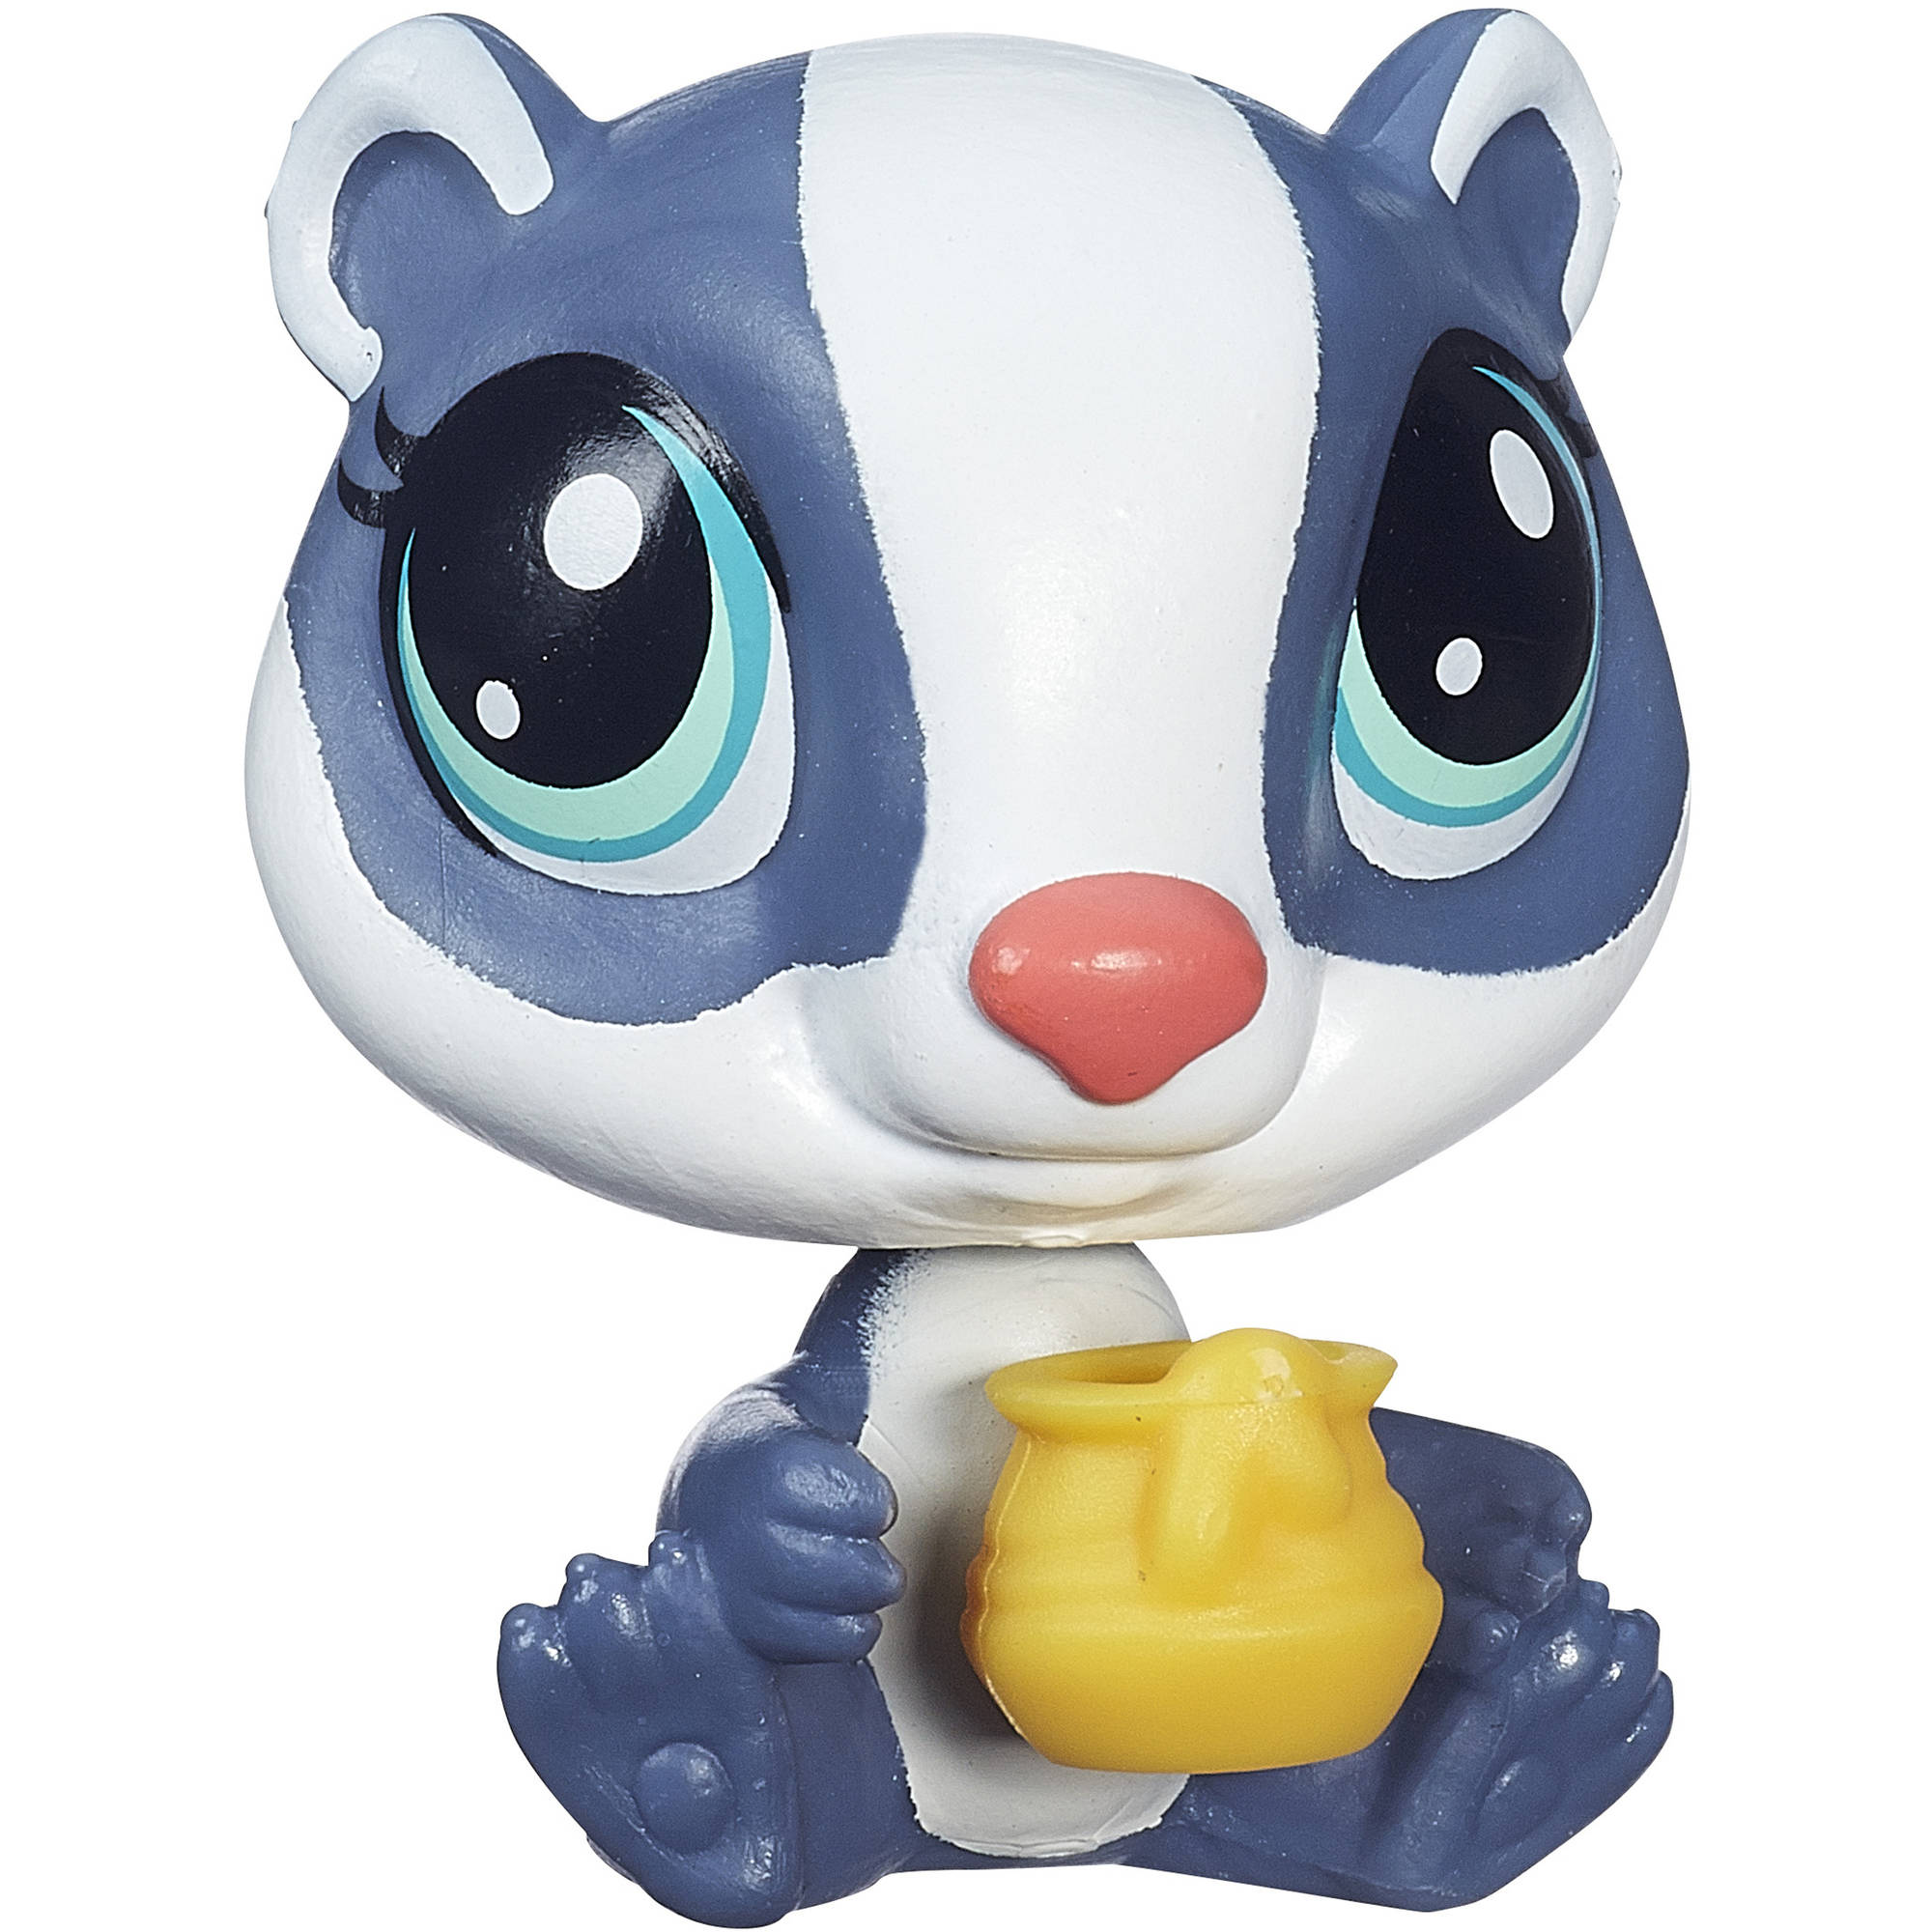 Littlest Pet Shop Get the Pets Single Pack, Honey Badgely